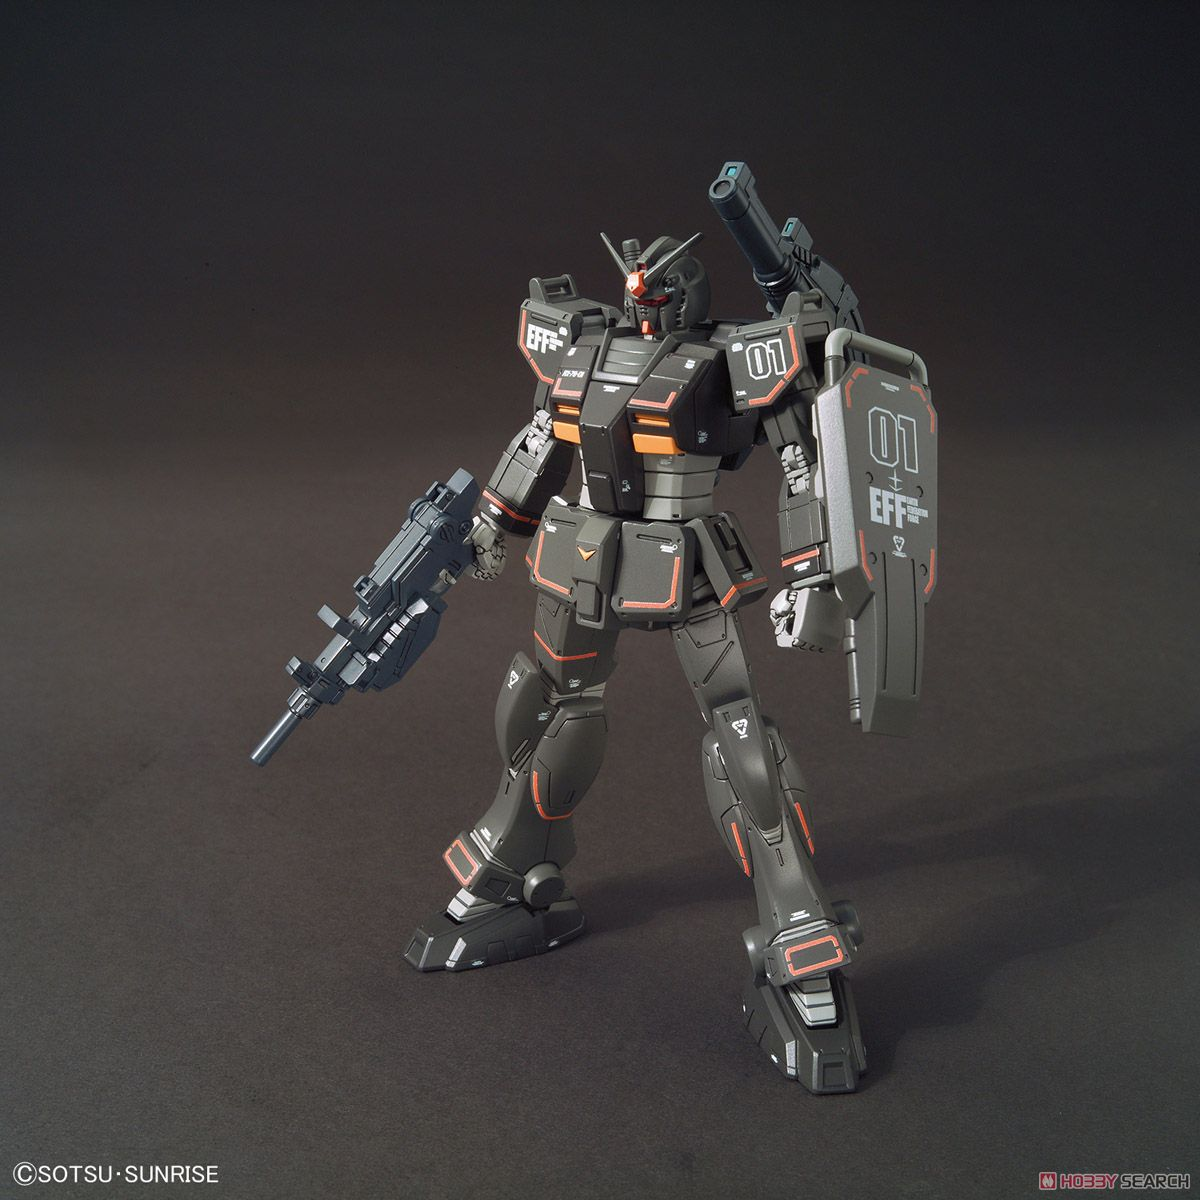 Gundam Local Type (North American Front) (HG) (Gundam Model Kits) Item picture5